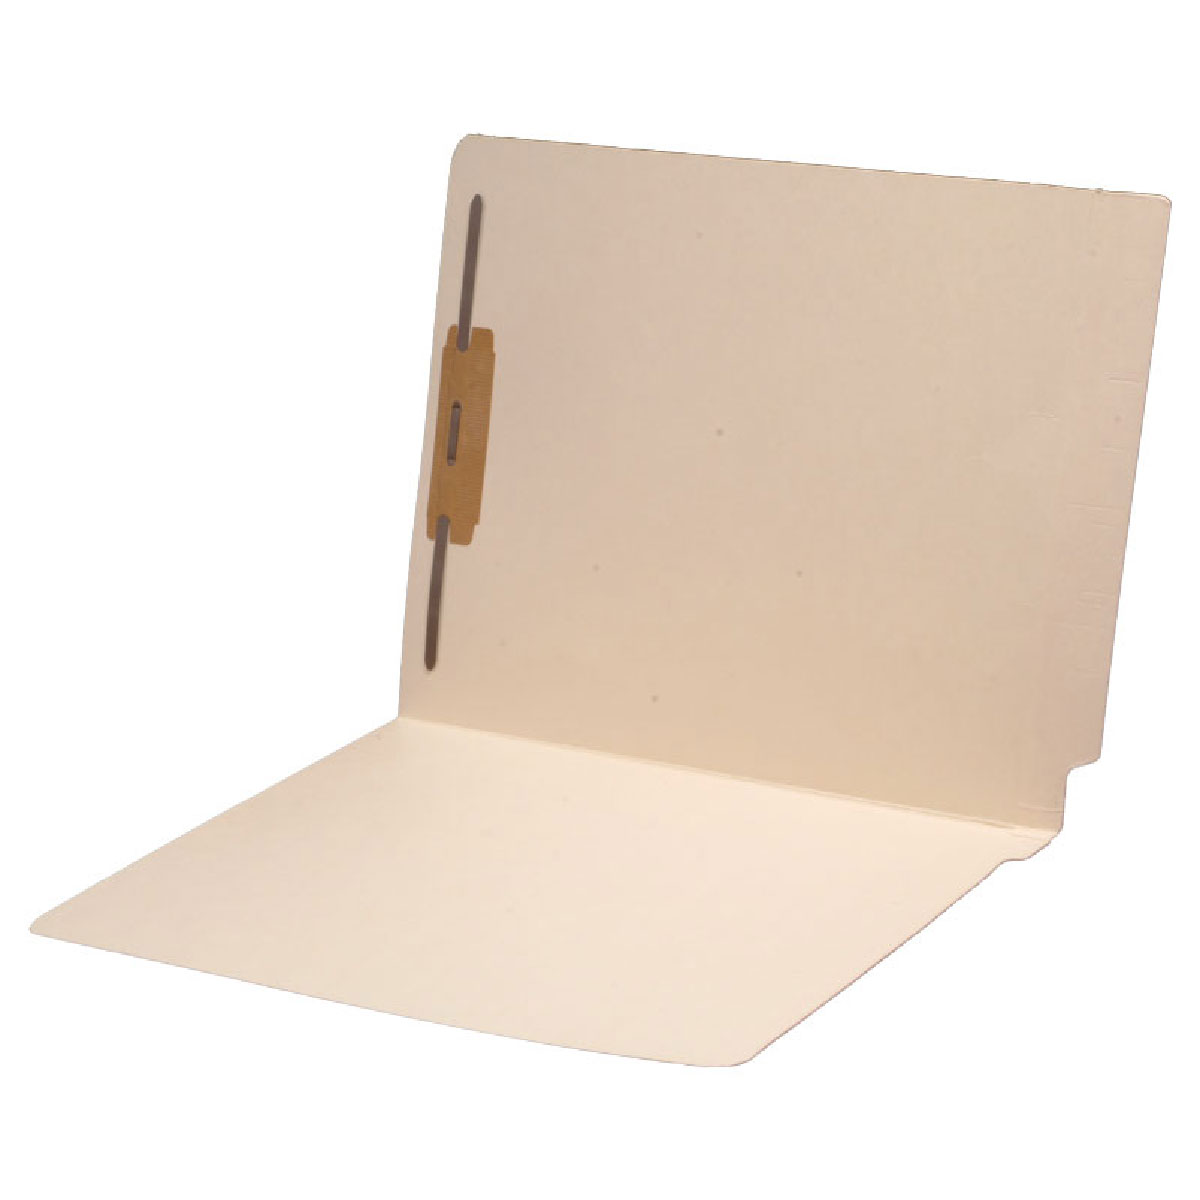 S-1323 - 14 pt Manila Folders, Full Cut 2-Ply End Tab, Letter Size, Fastener Pos #1 (Box of 50)